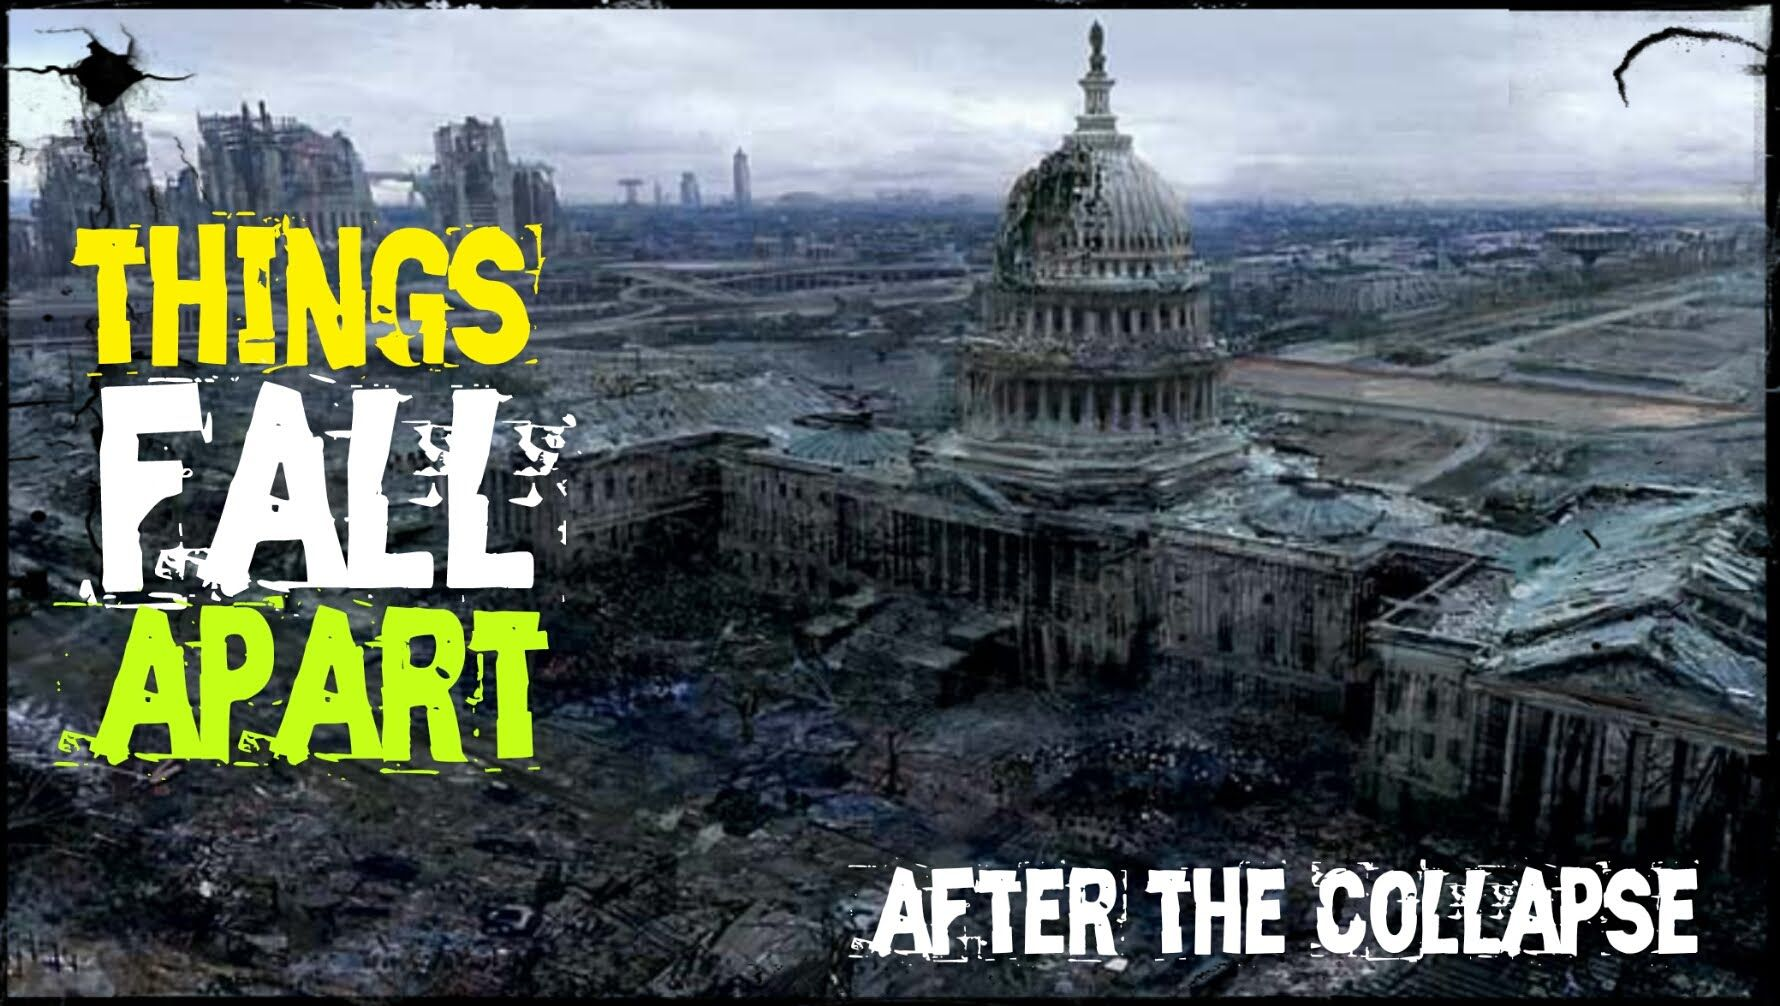 After The Collapse: Some Allies Will Make That Mad World Bearable; Others Will Bring The Madness To Your Doorstep